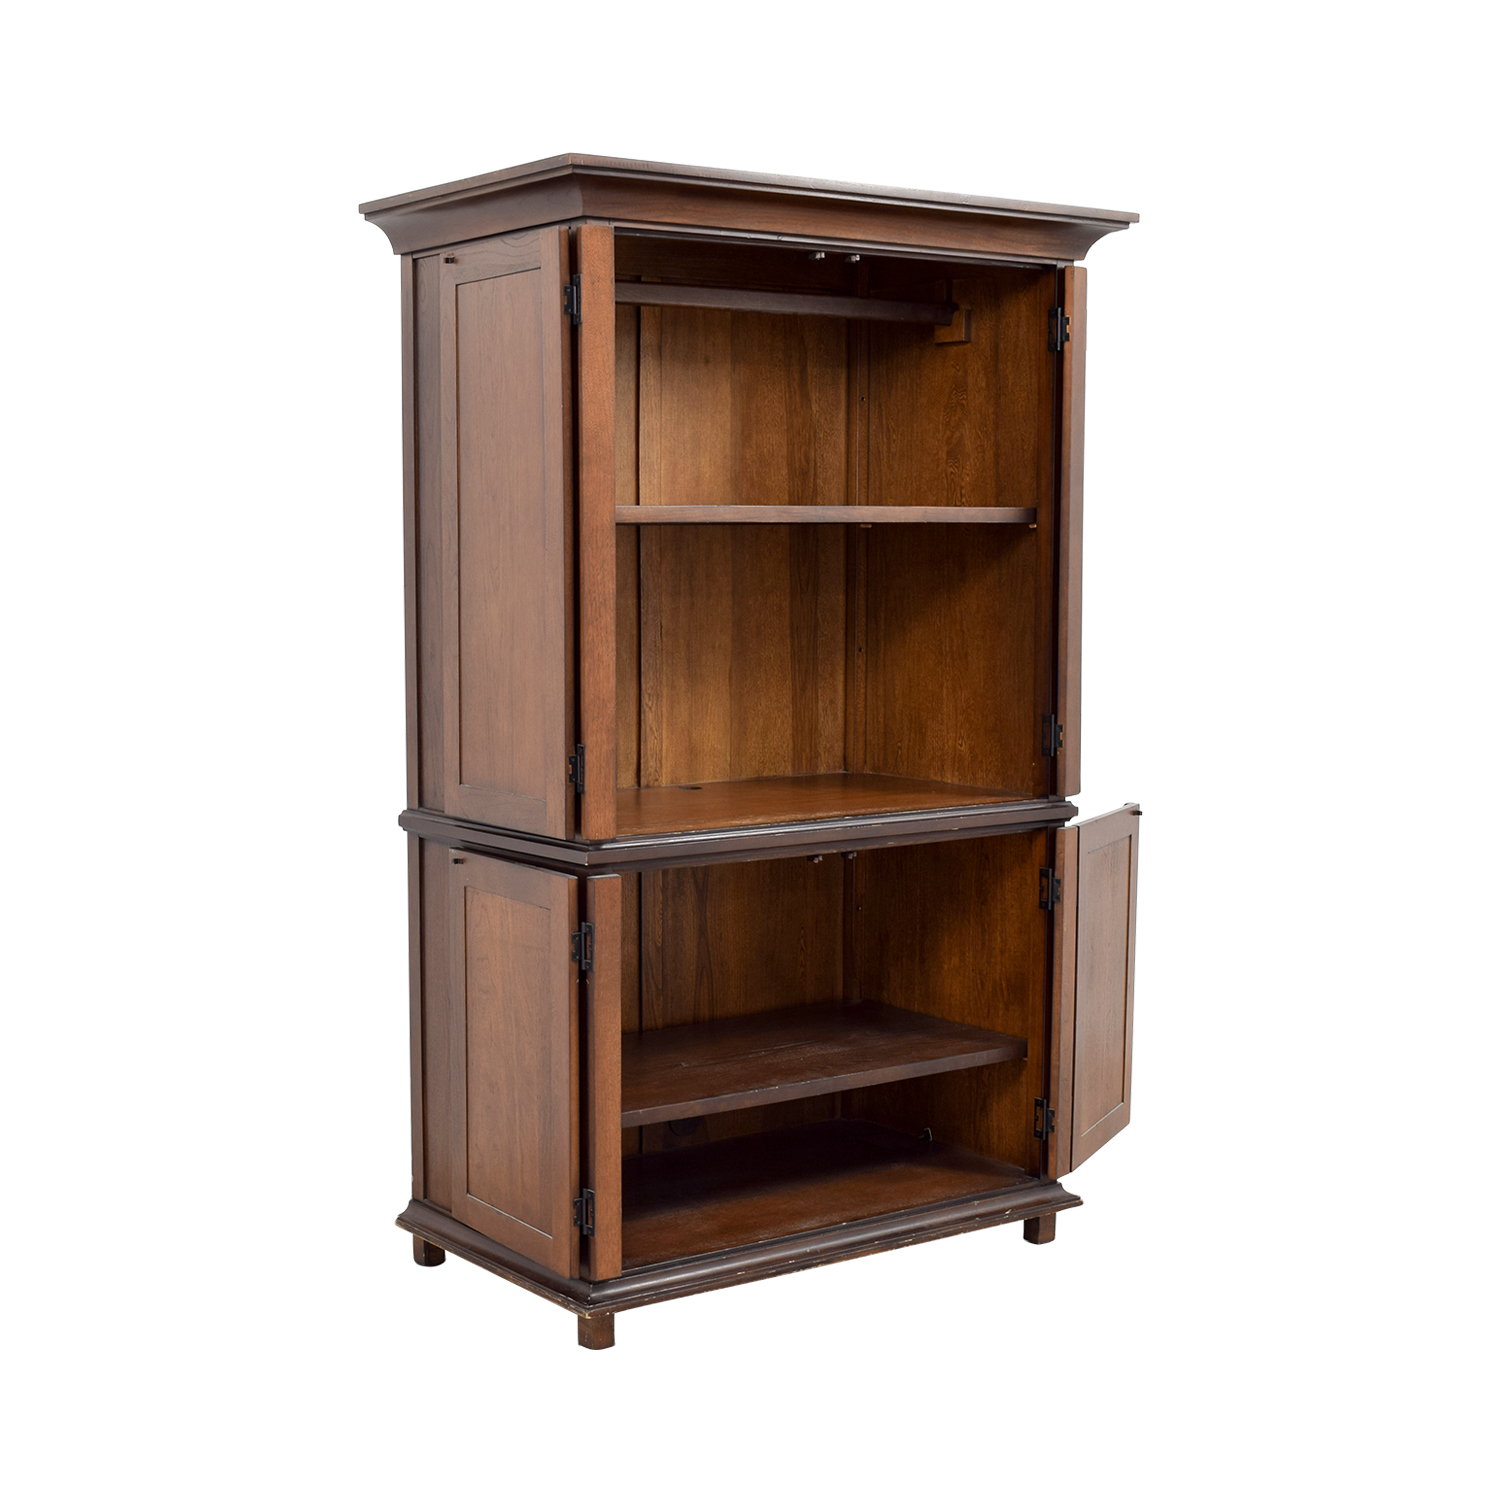 75 Off Pottery Barn Pottery Barn Armoire With Shelves